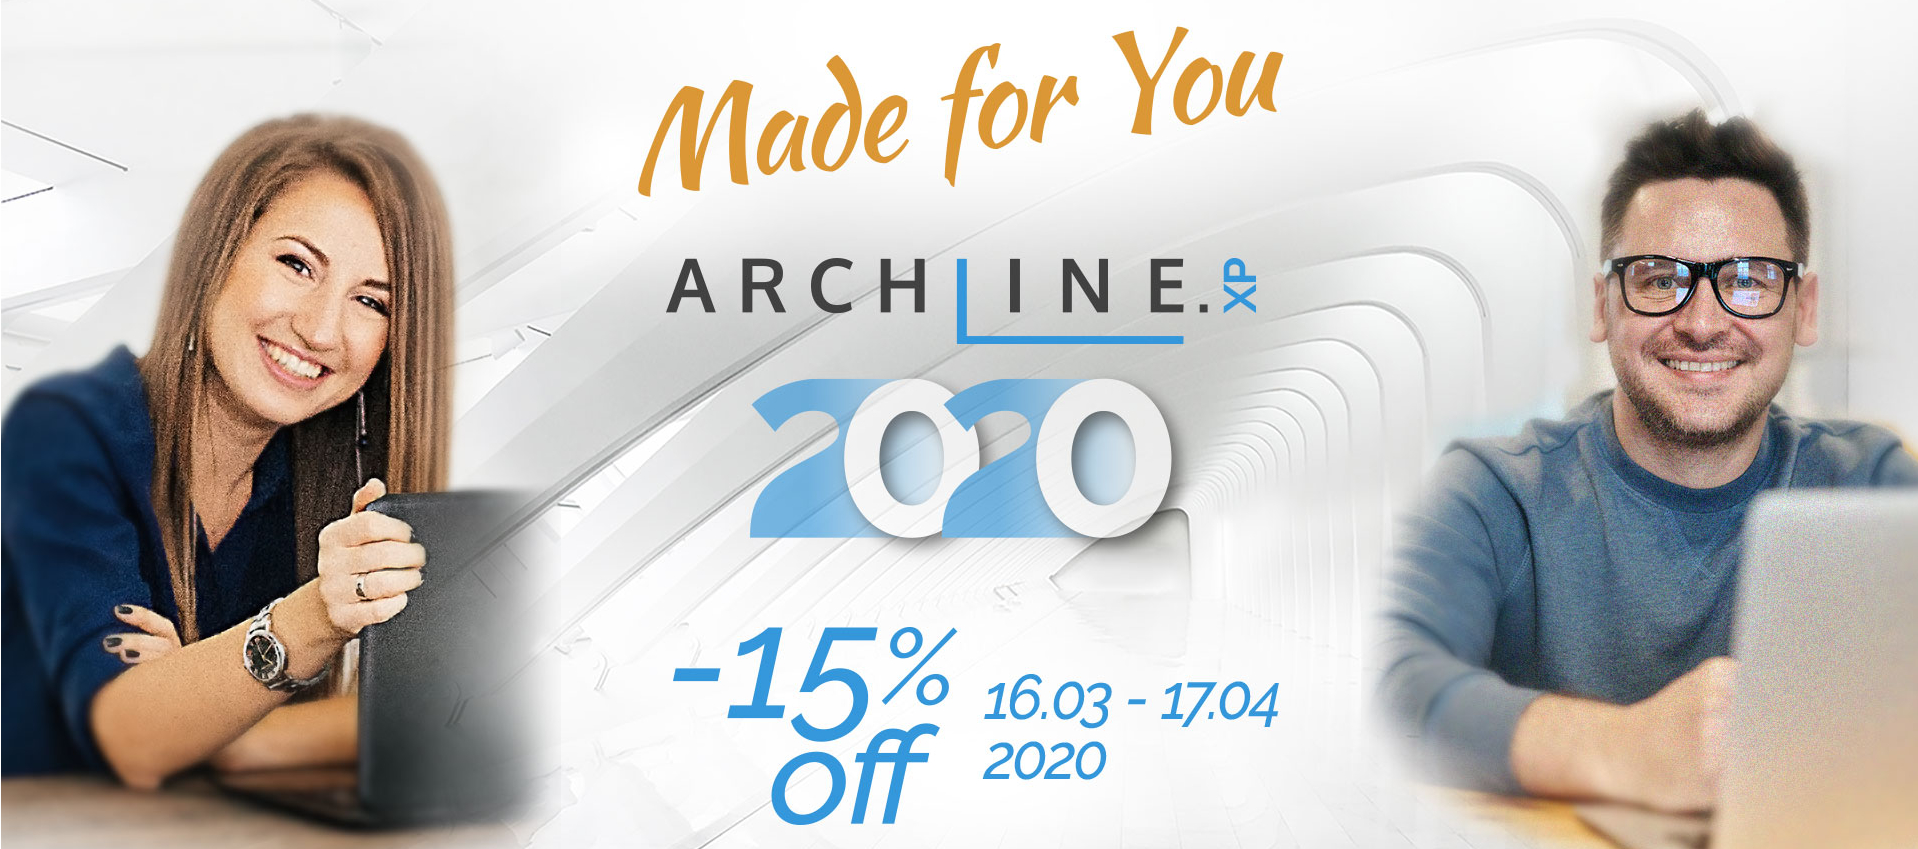 ARCHLine.XP 2020 - is out now!